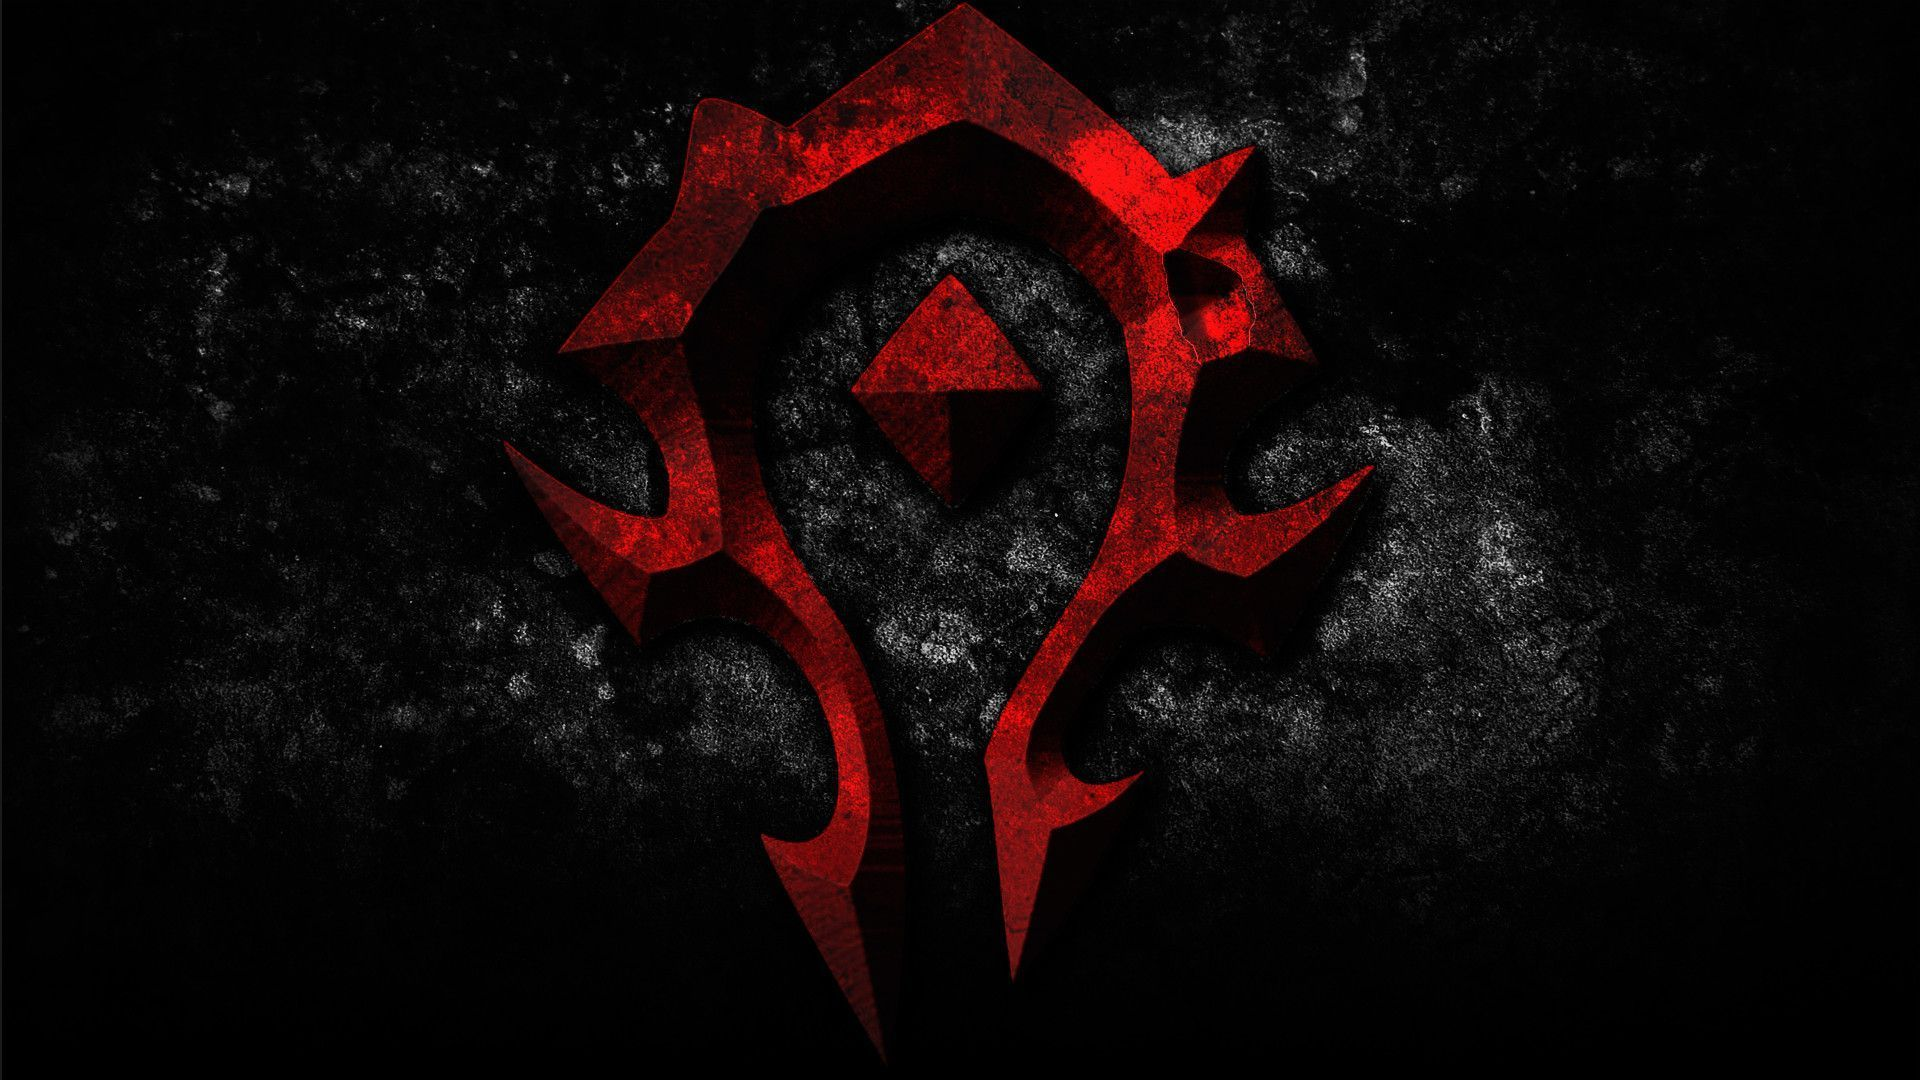 Warcraft Horde Logo Symbol Wallpaper Hd Wallpaper Feedwallpaper Feed Warcraft Art World Of Warcraft Wallpaper World Of Warcraft